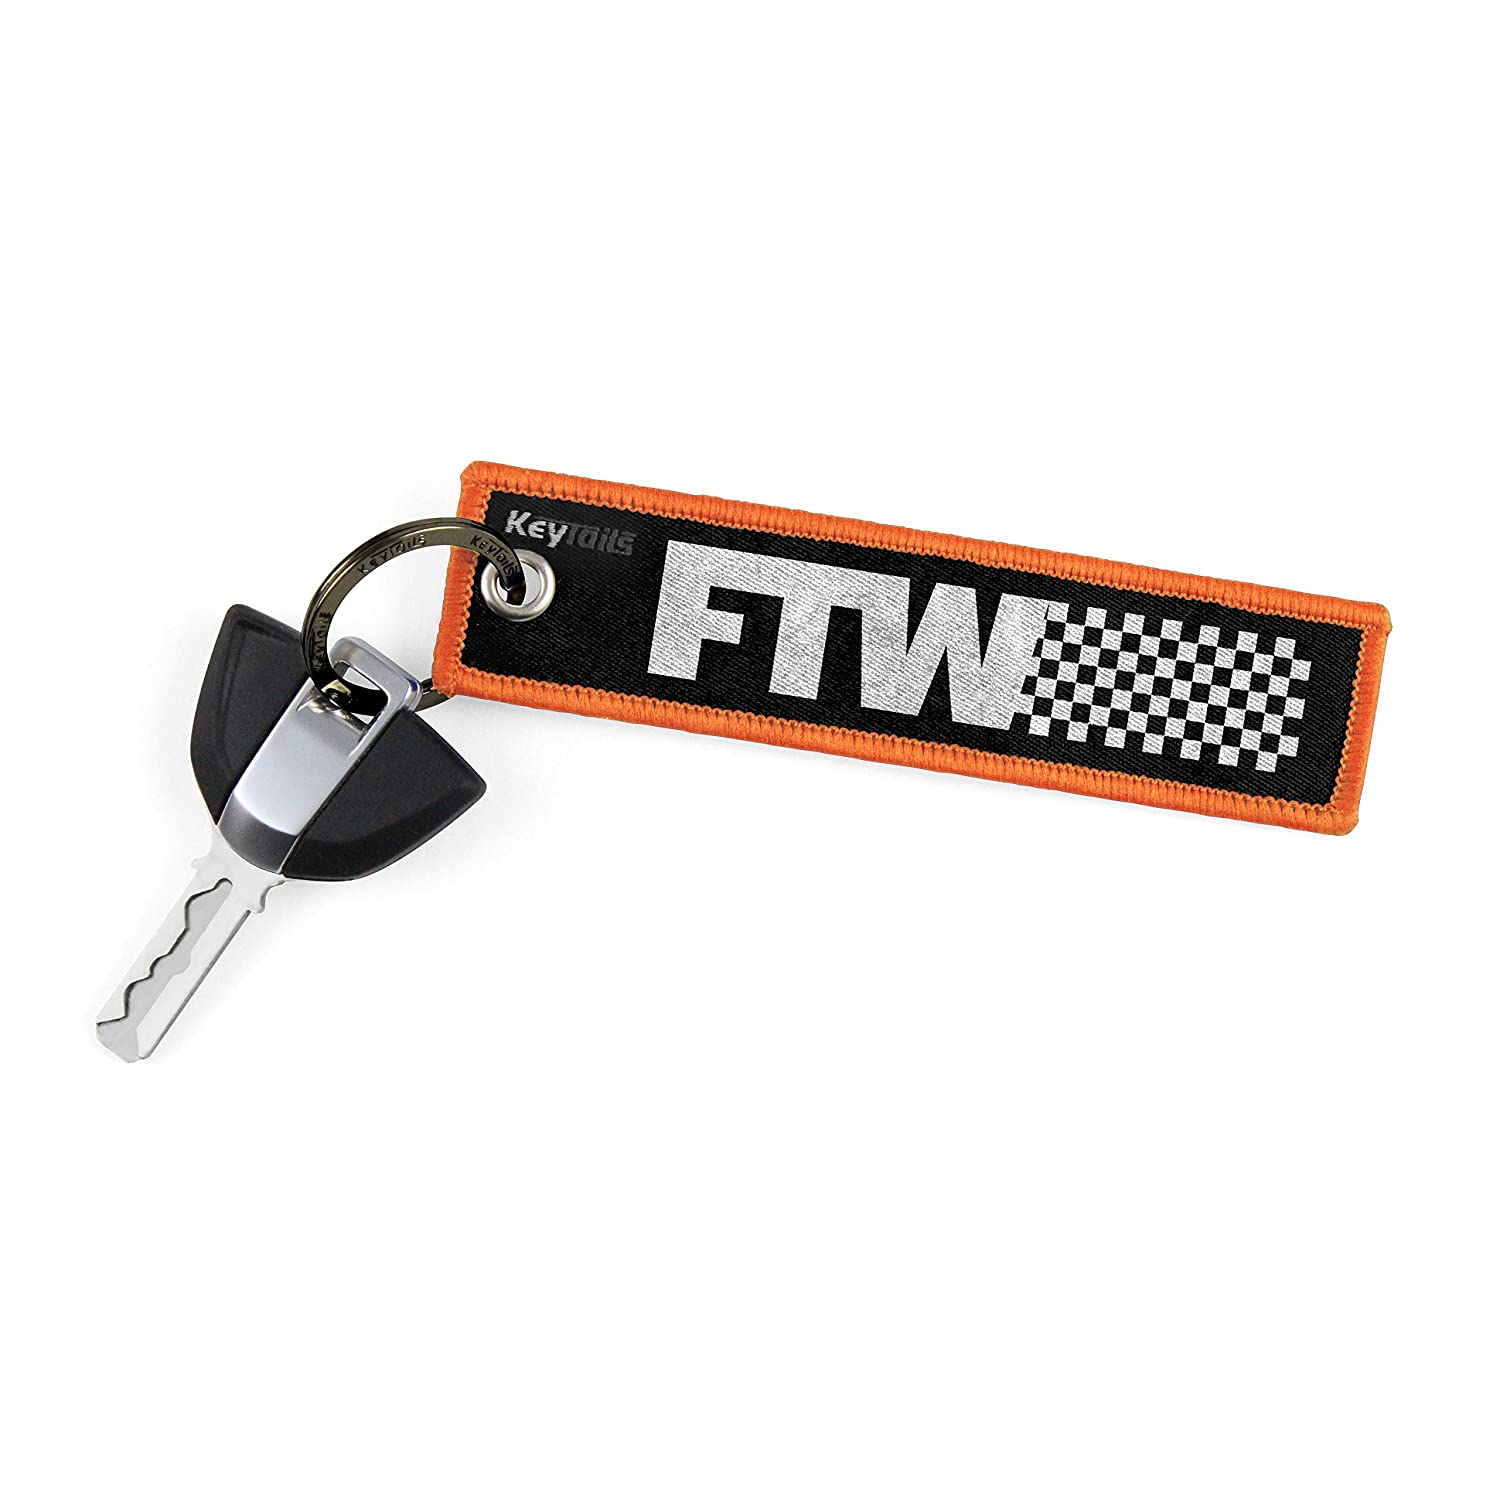 FTW - For The Win, Forever Two Wheels KEYTAILS Keychains Premium Quality Key Tag for Motorcycle UTV Scooter ATV Car Key Tails